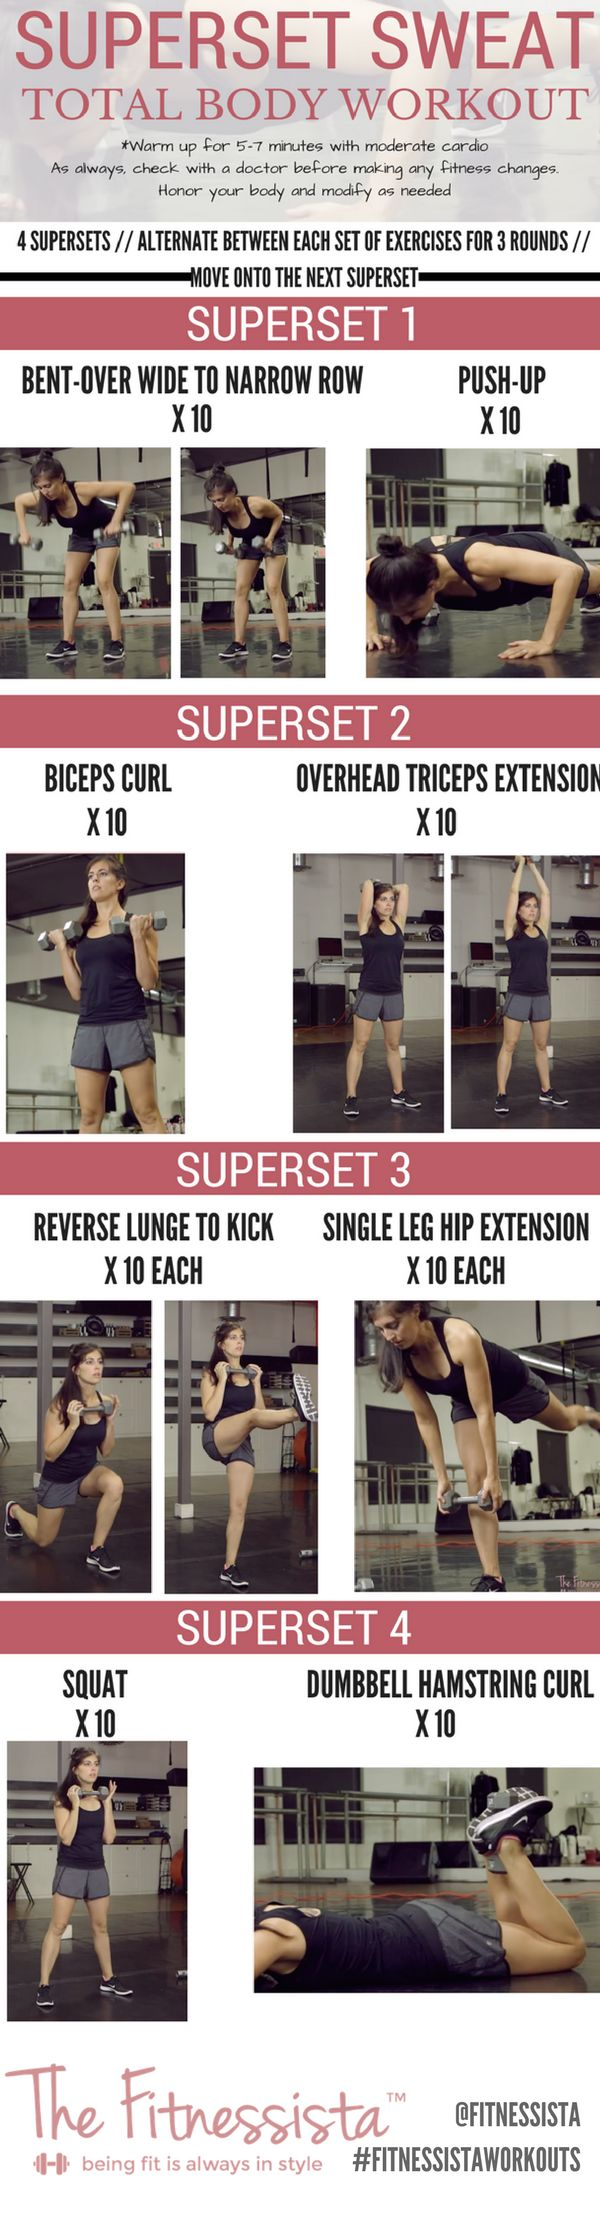 Total body superset workout. All you need is a pair of dumbbells! Work your entire body and burn a ton of calories. fitnessista.com How to lose weight fast in 2017 get ready to summer #weightloss #fitness